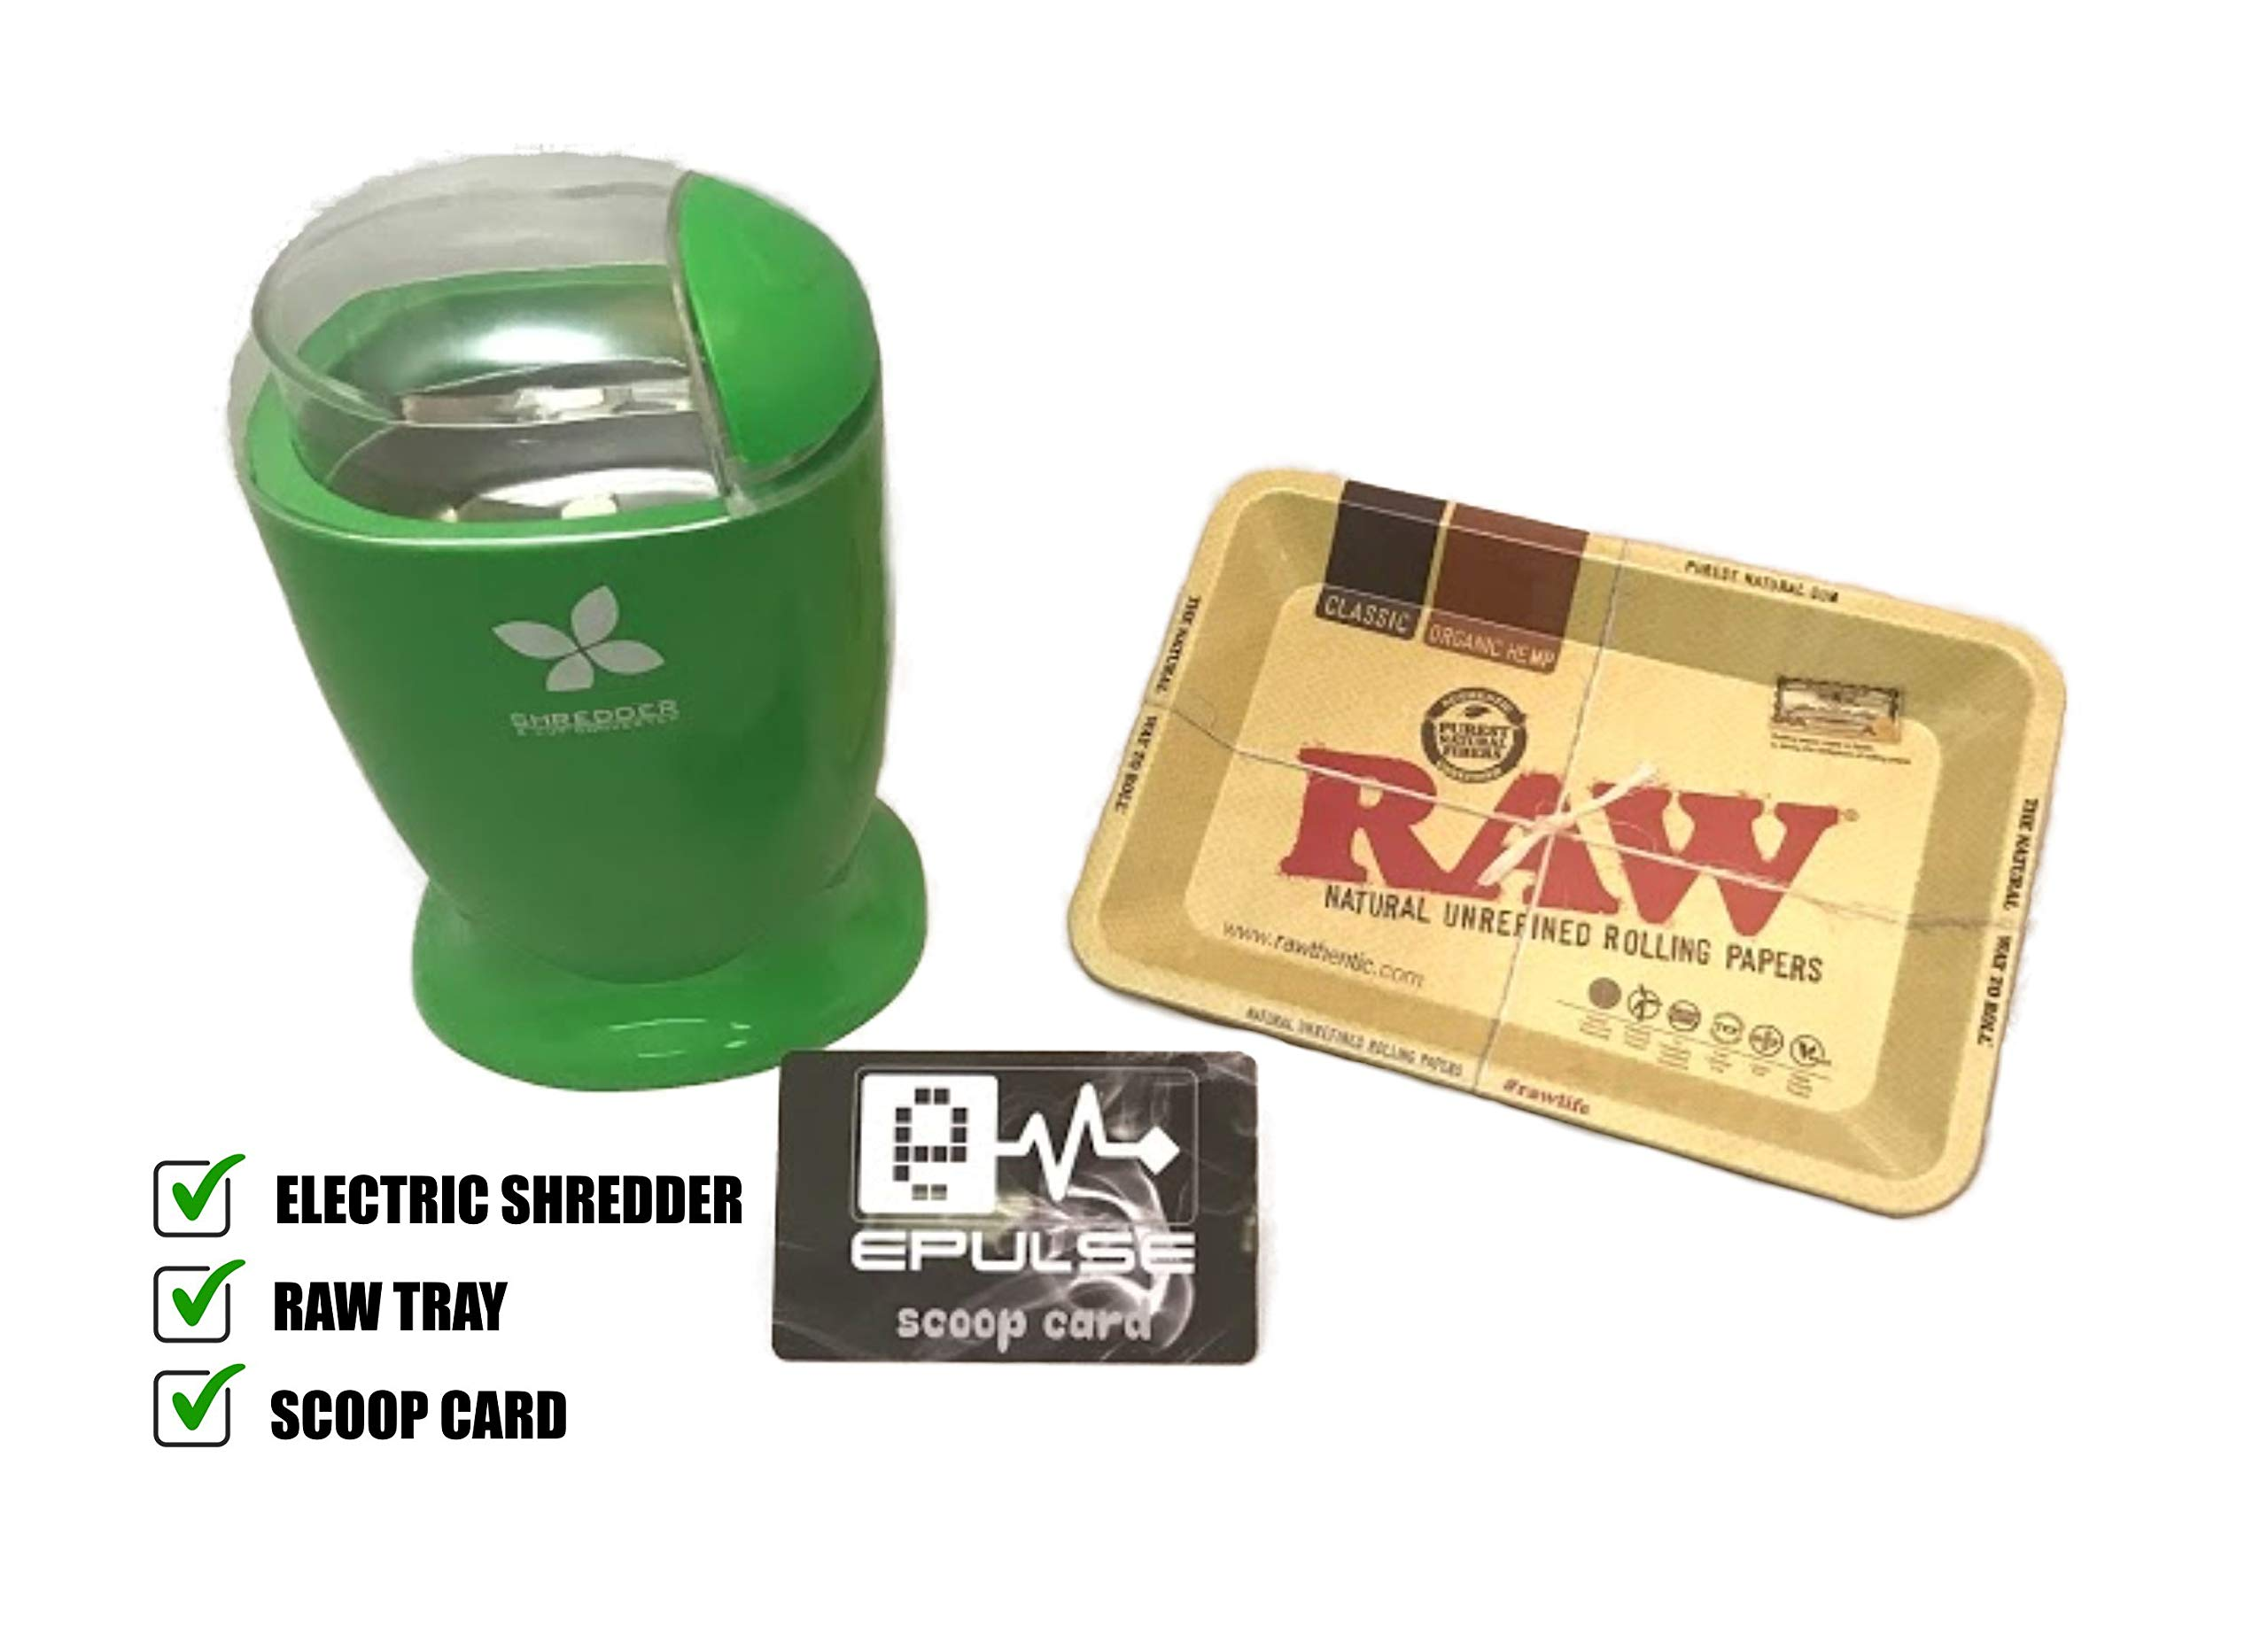 Bundle: Raw Metal Rolling Tray Mini & Electric Herb Shredder - Cutter - Converter with epulse Scoop Card by RAW